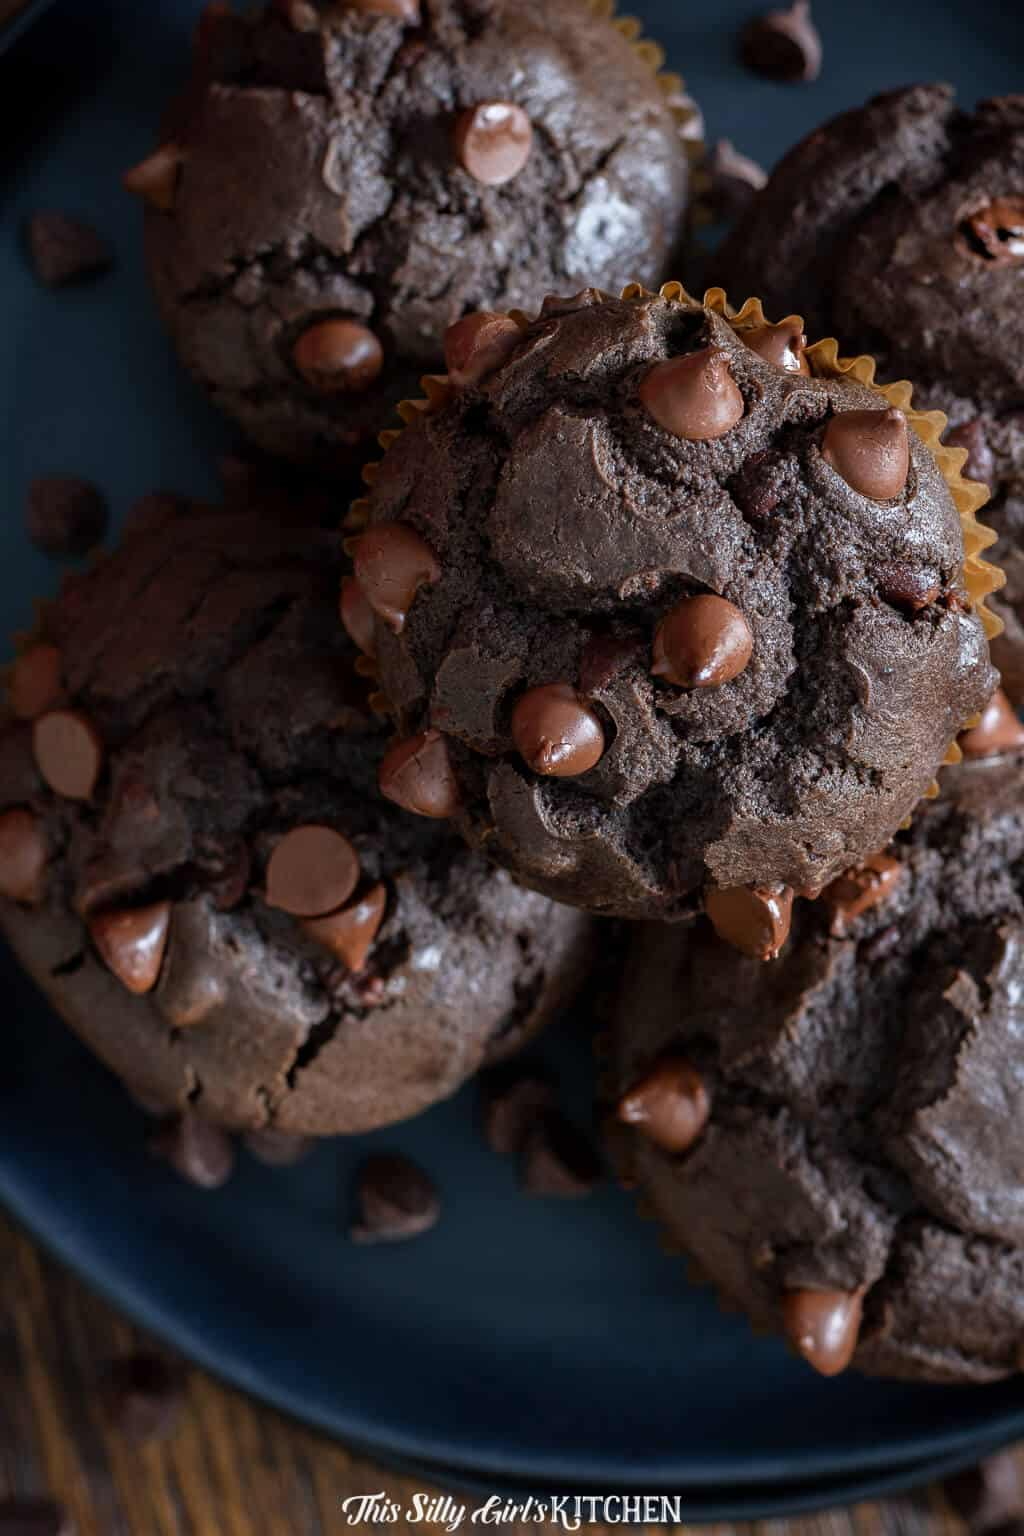 Overhead of Chocolate Chip Muffins on dark plate